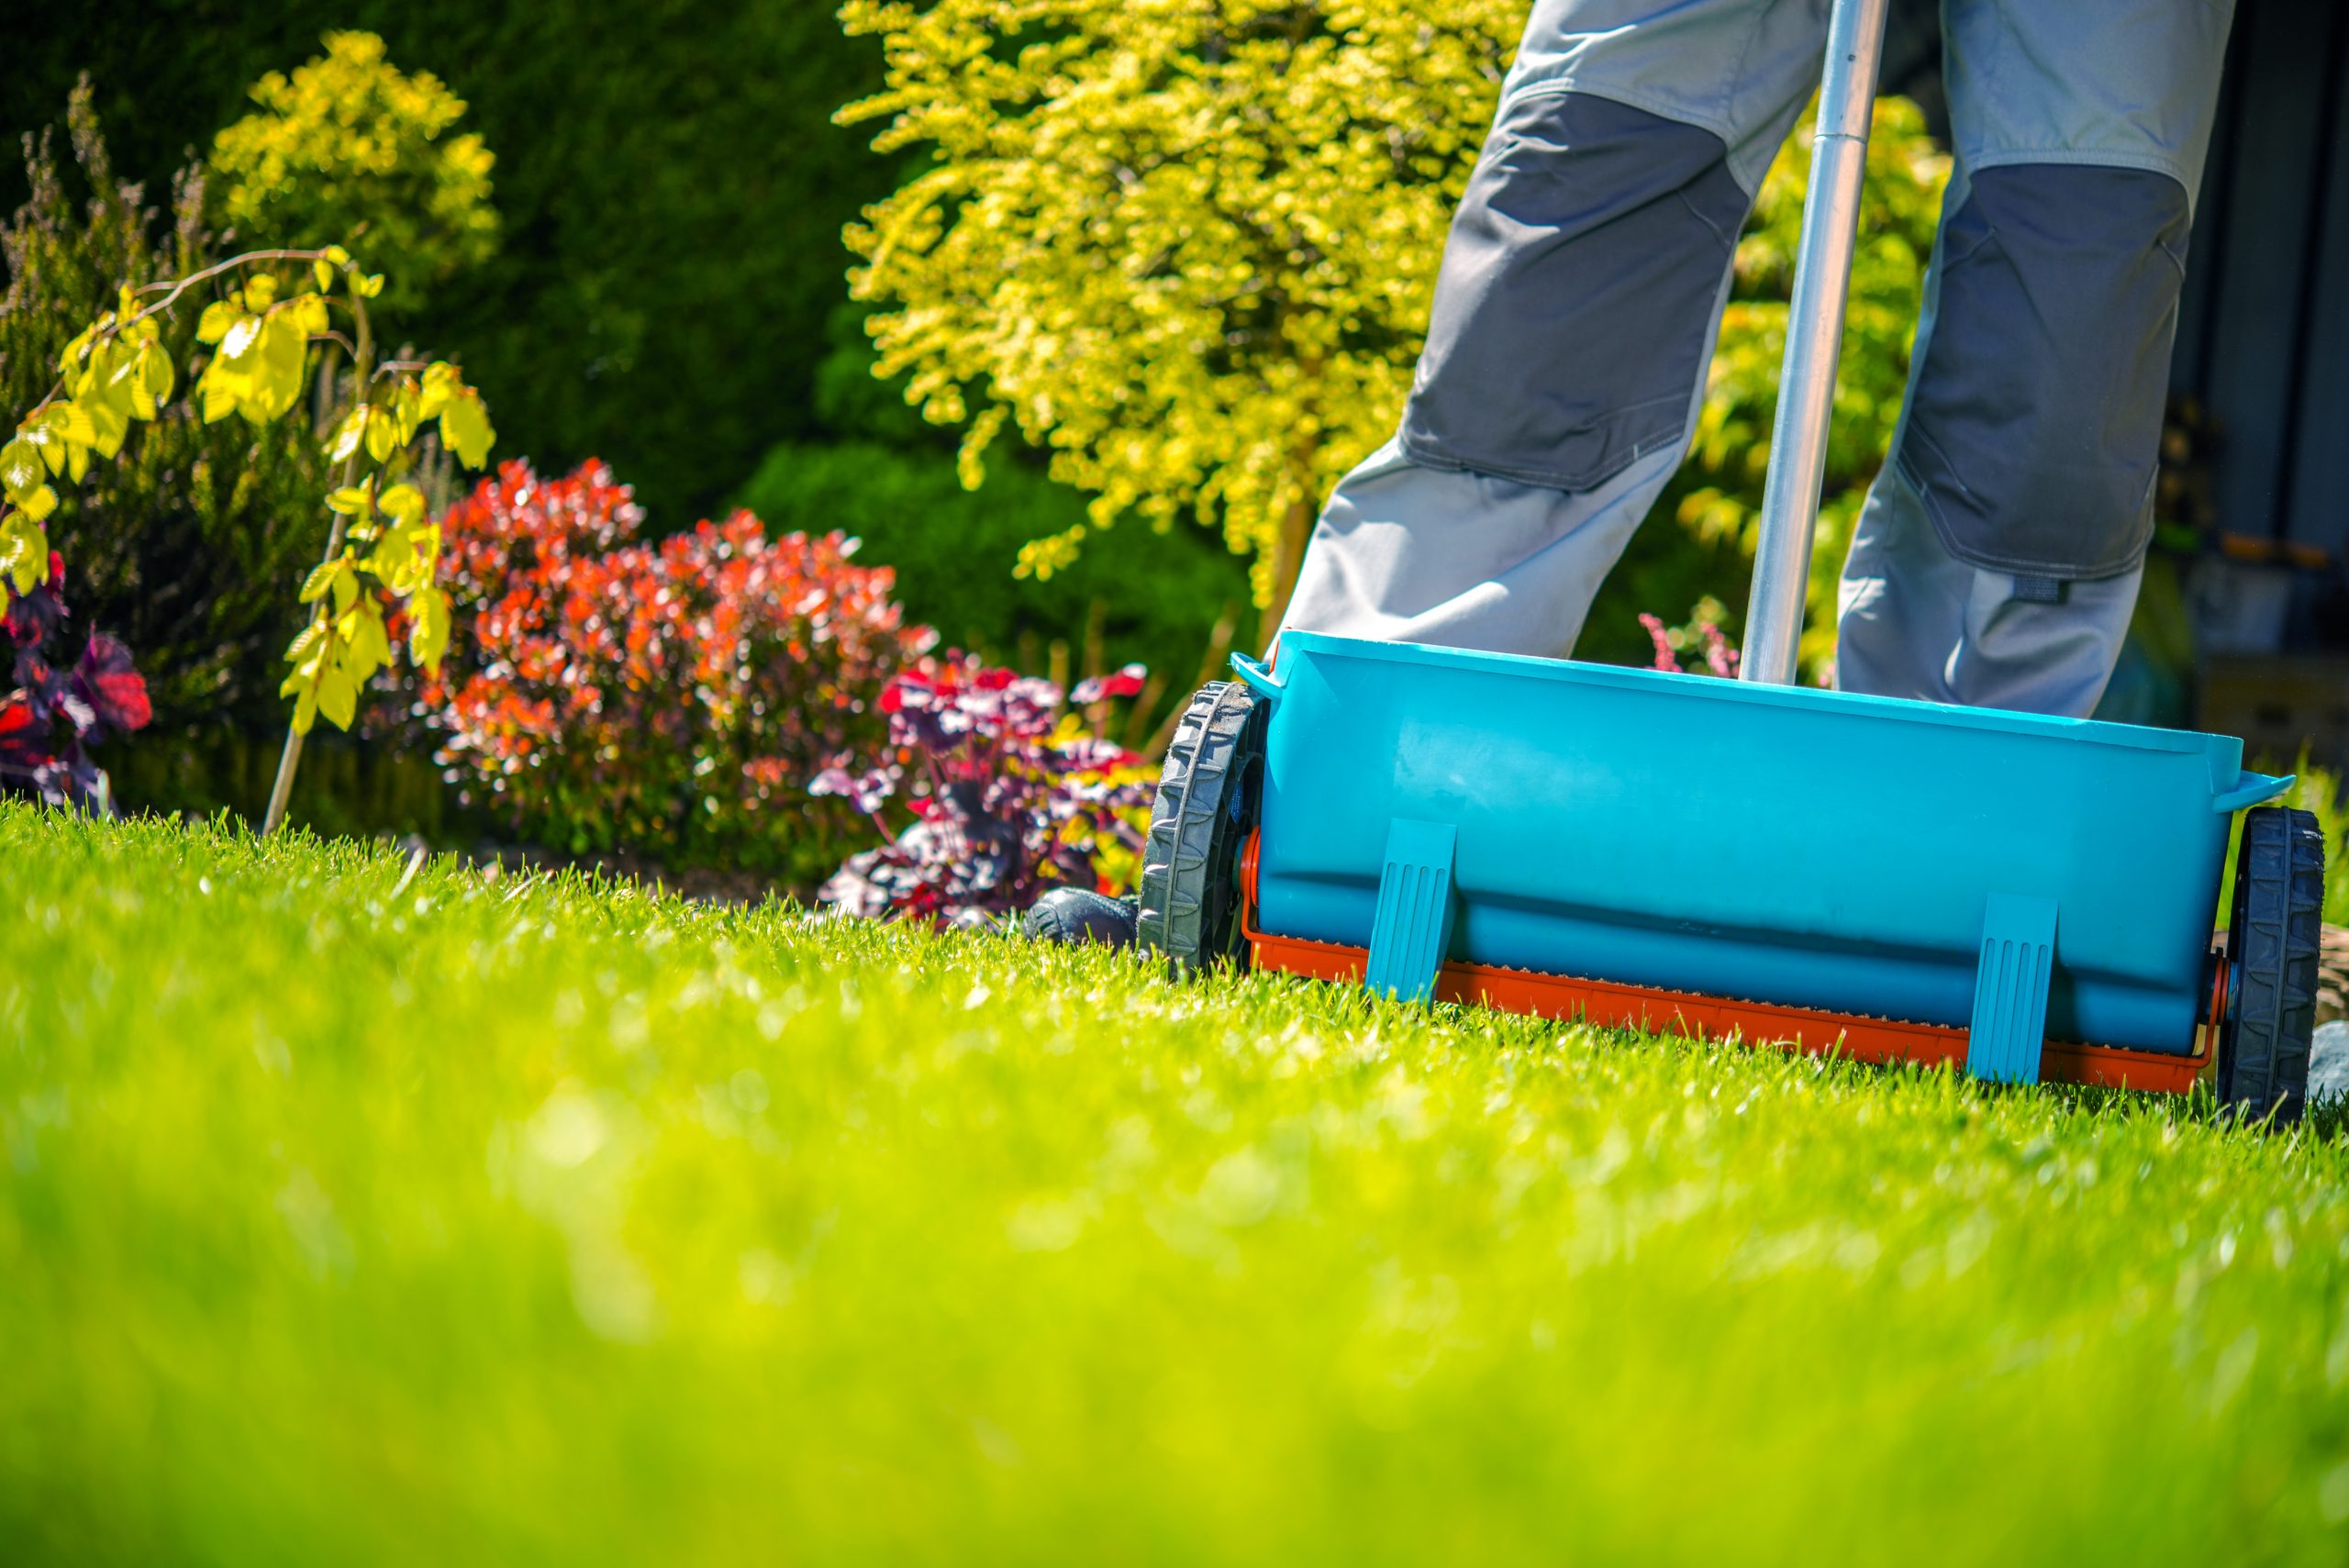 Weed Control Tips For A Greener Summer